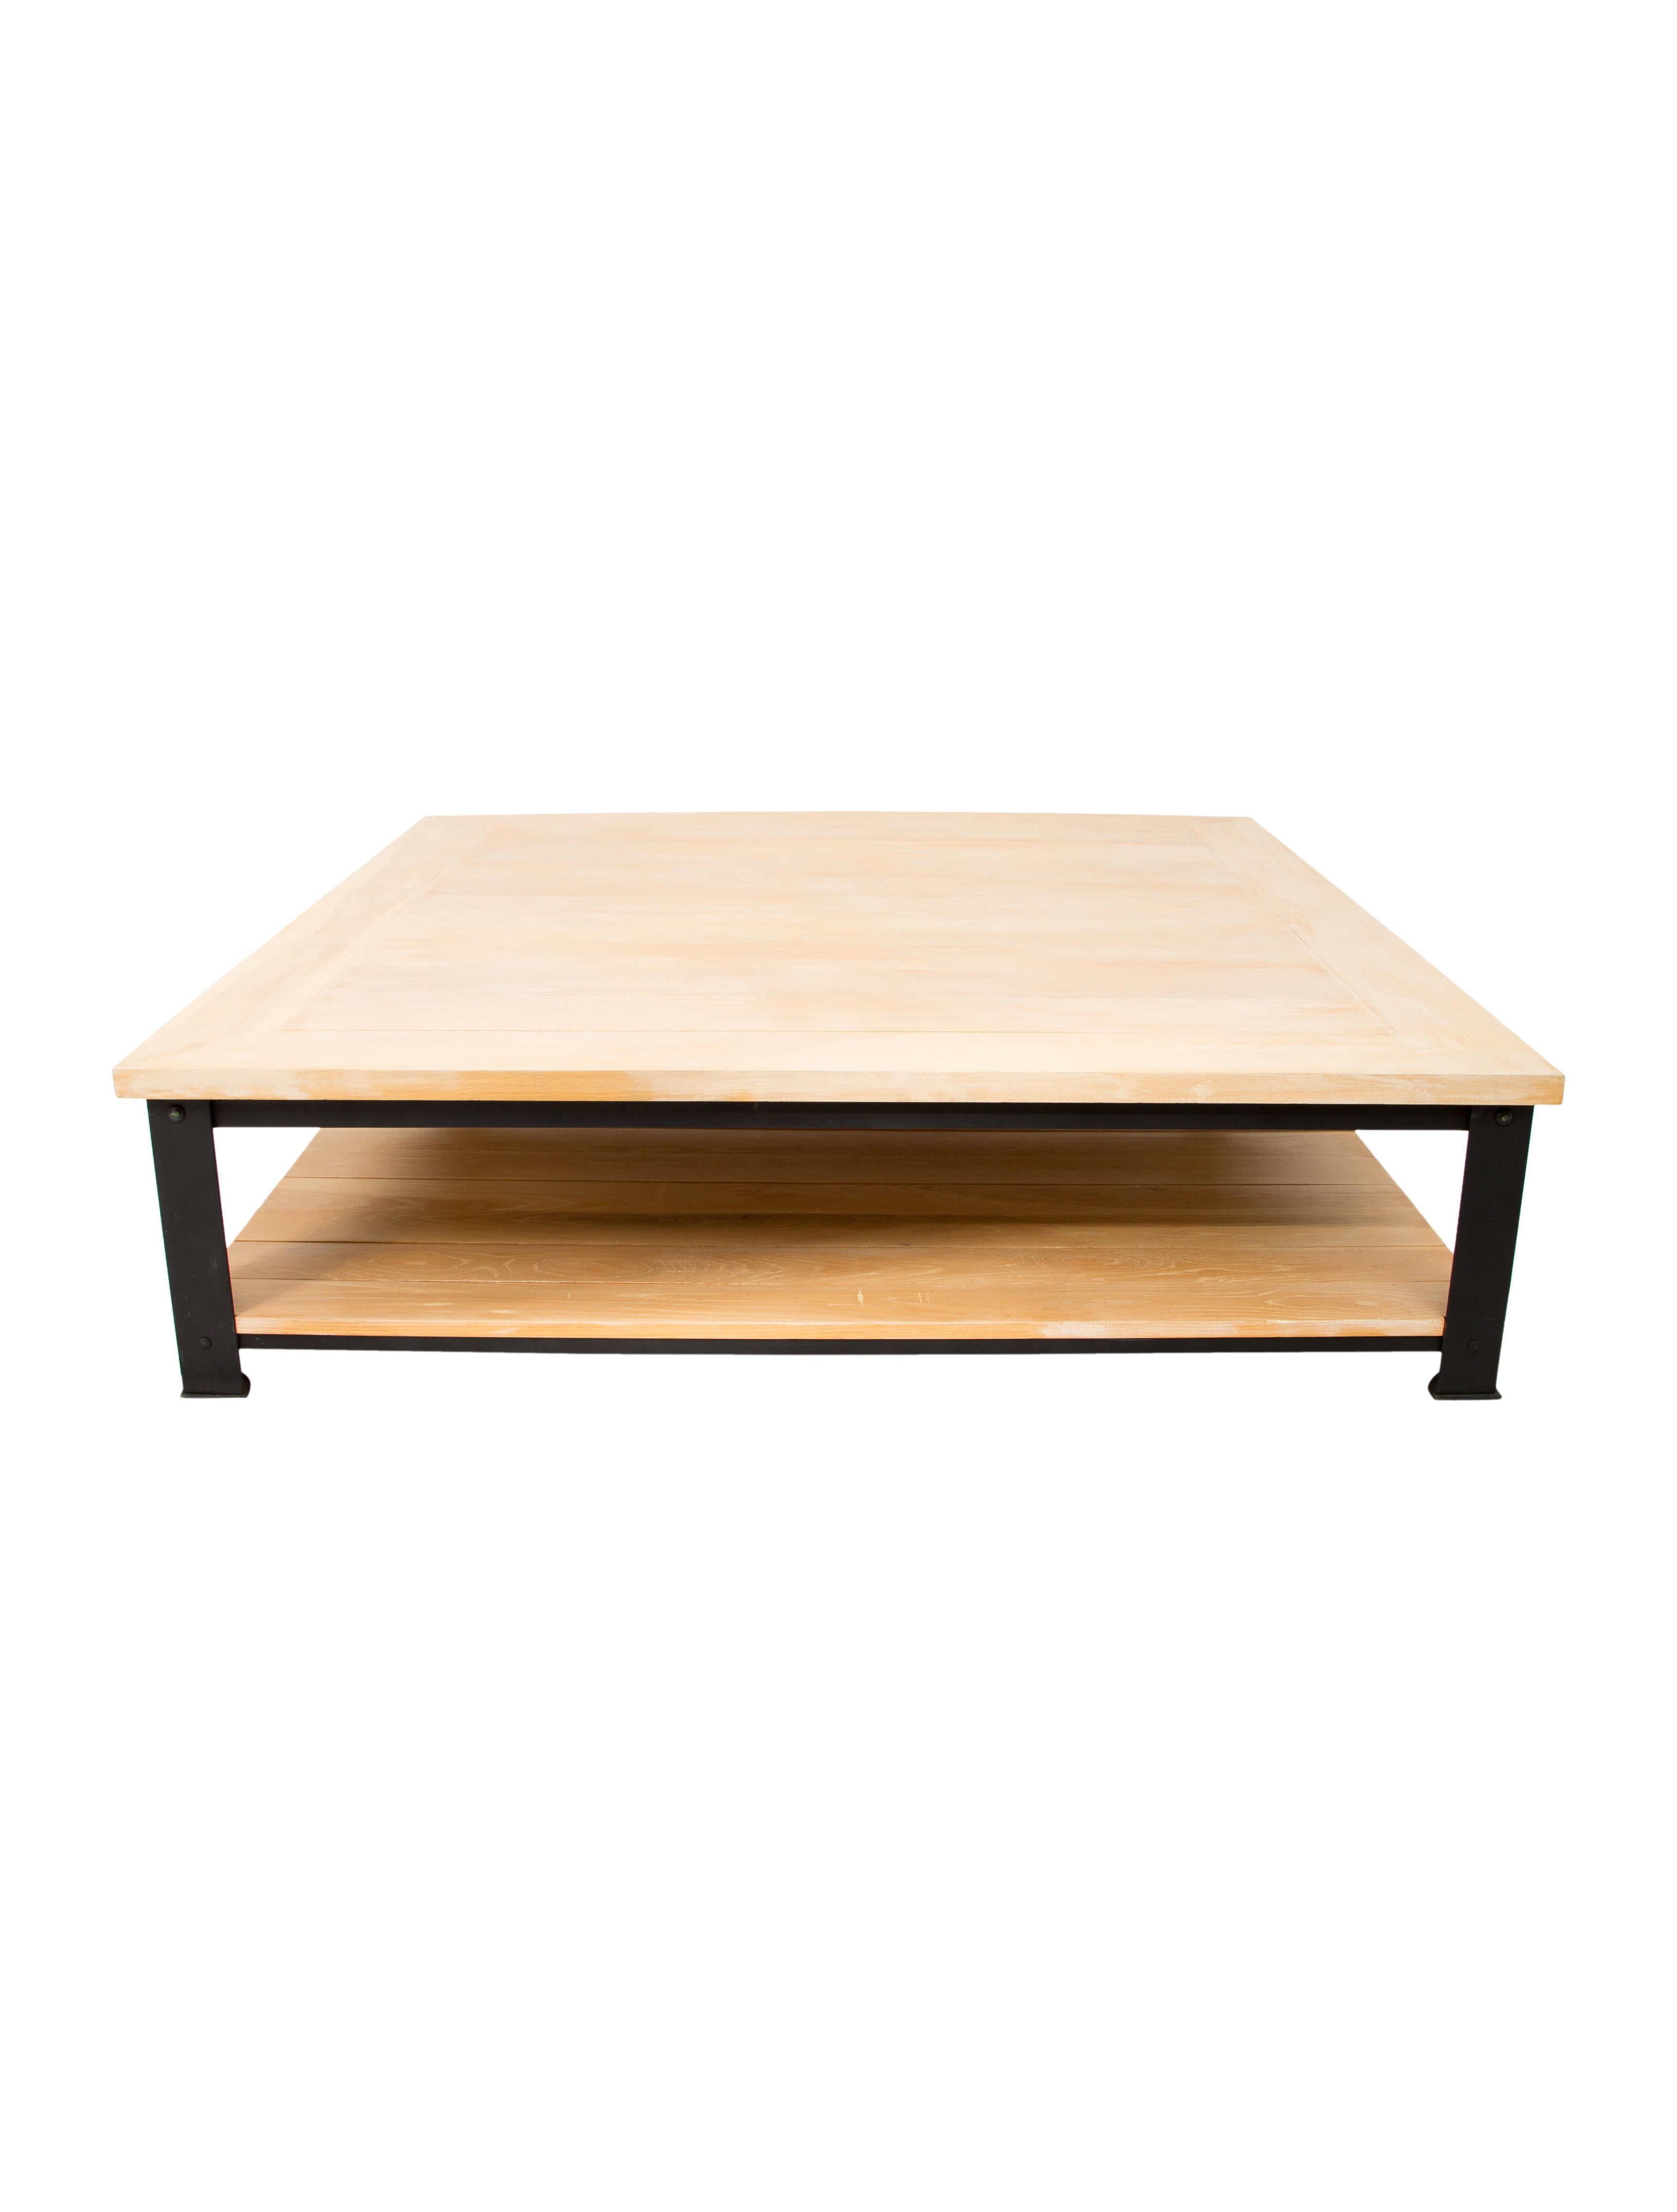 Limed Oak Coffee Table Furniture Coffe20015 The Realreal